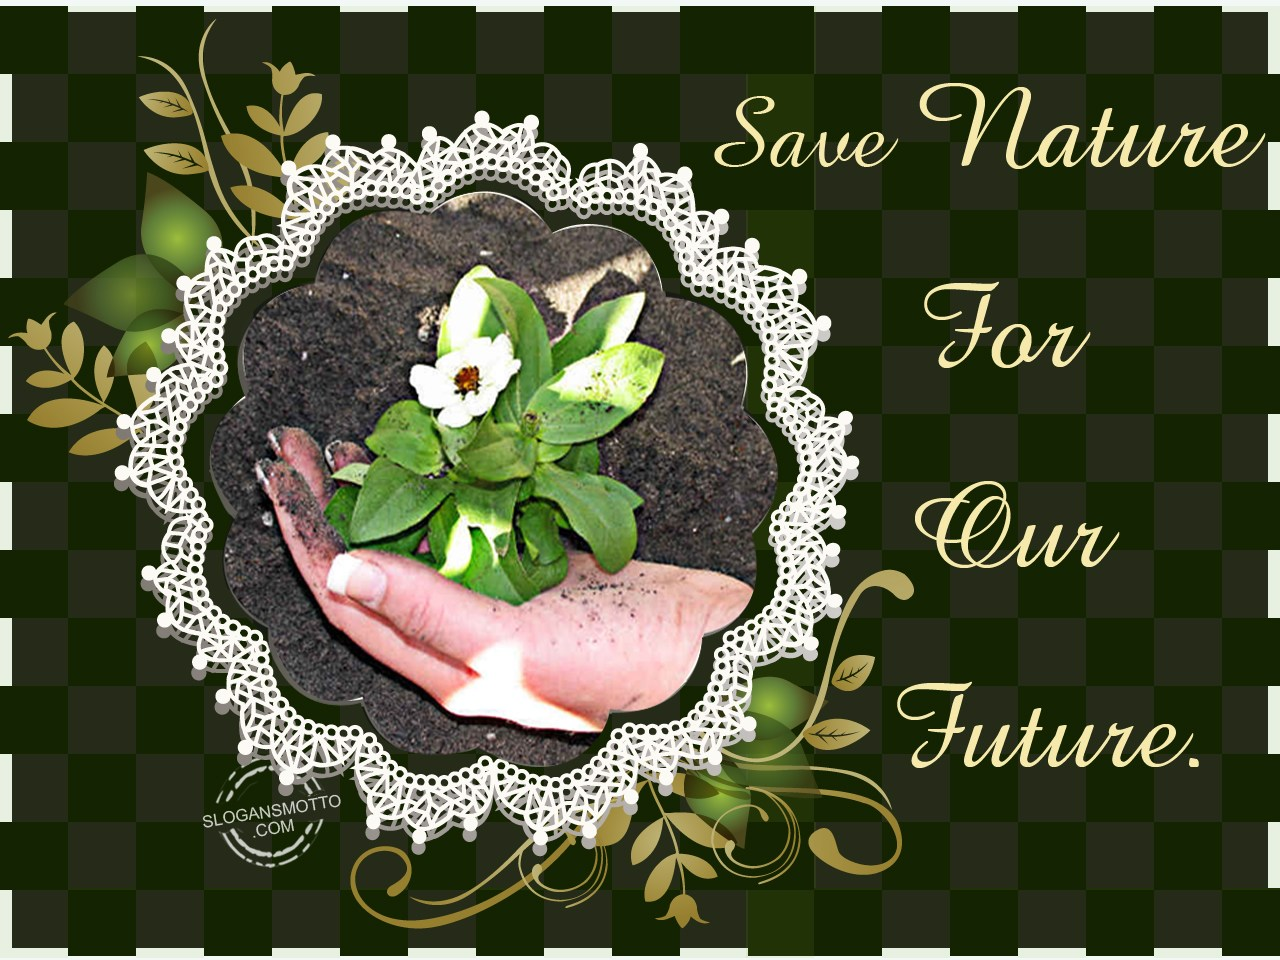 save our nature for the future generation 2018-06-05 new delhi, jun 5 : on the occasion of world environment day on tuesday, prime minister narendra modi on tuesday urged the people to ensure a clean and green planet so that the future generation can live in harmony.